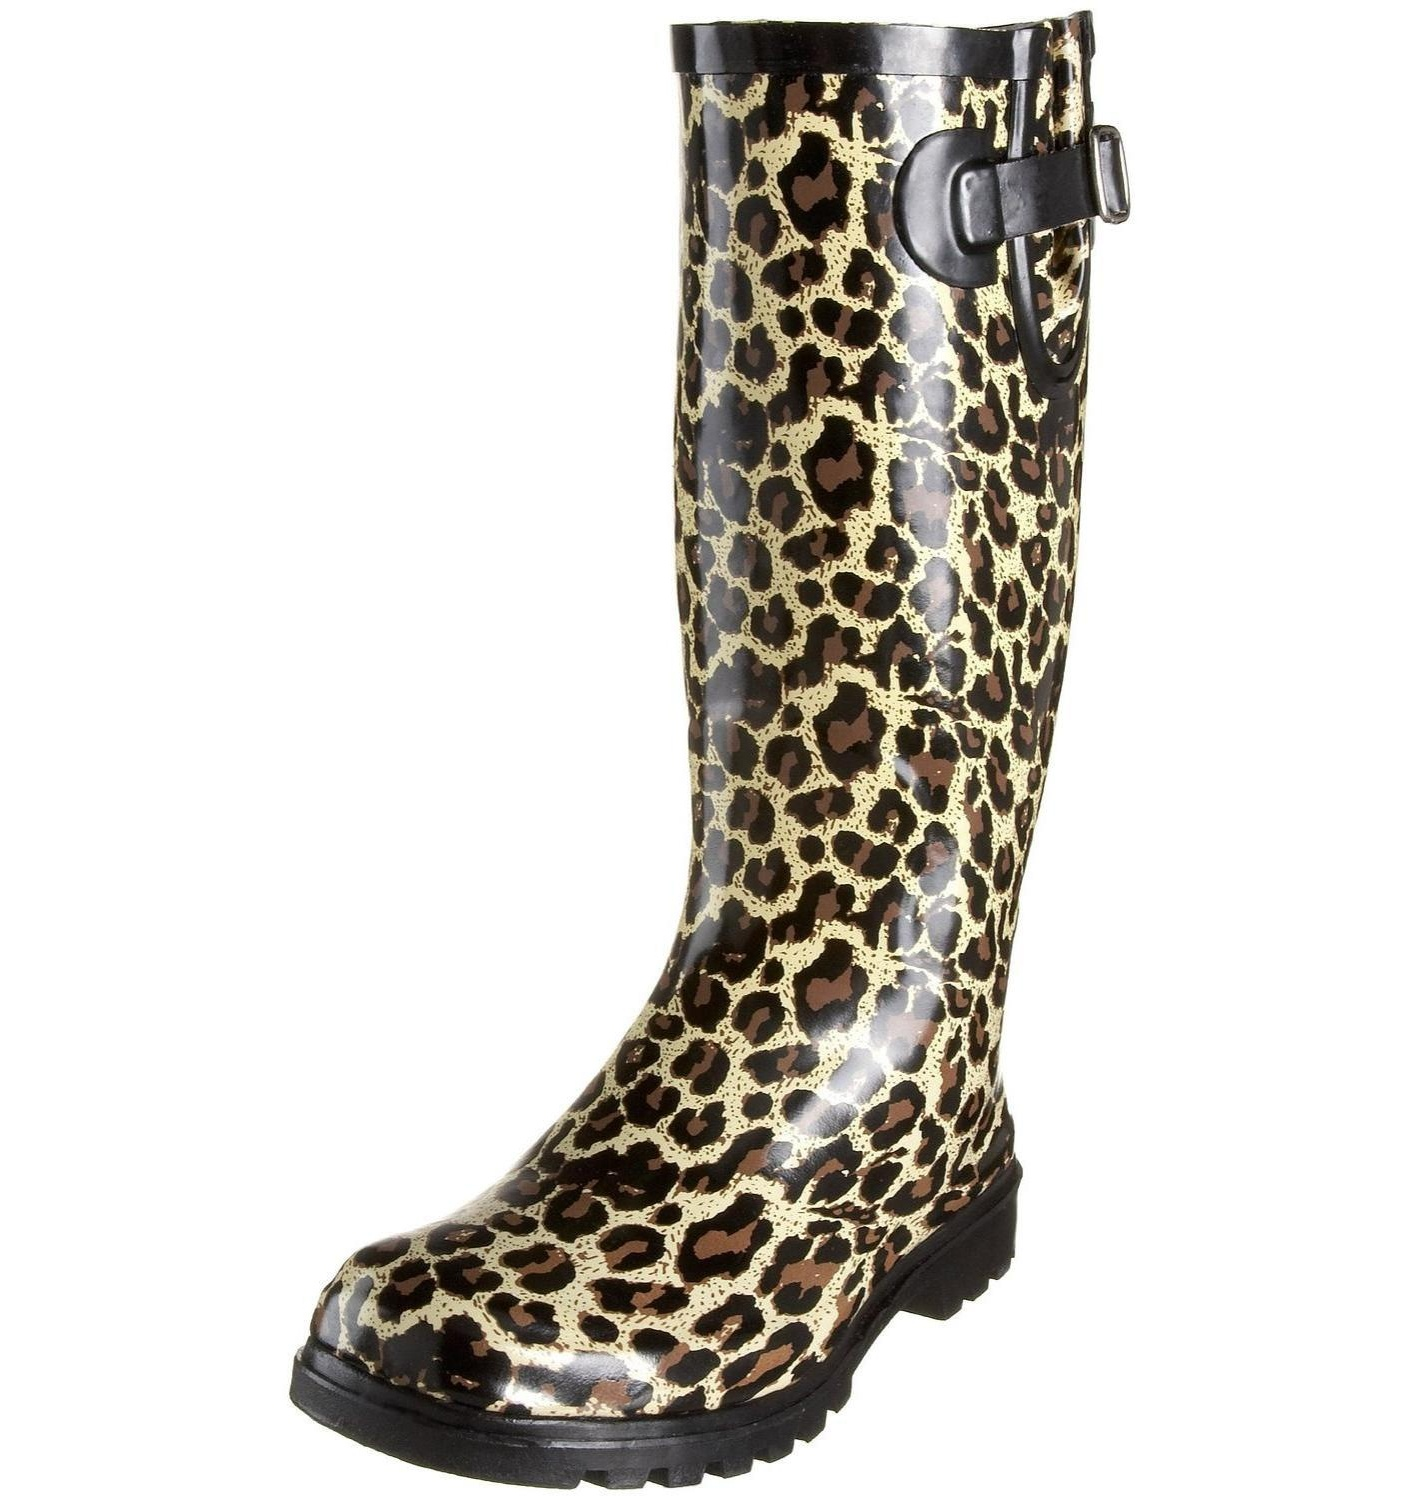 Nomad Tan Leopard Rain Boot by Nomad